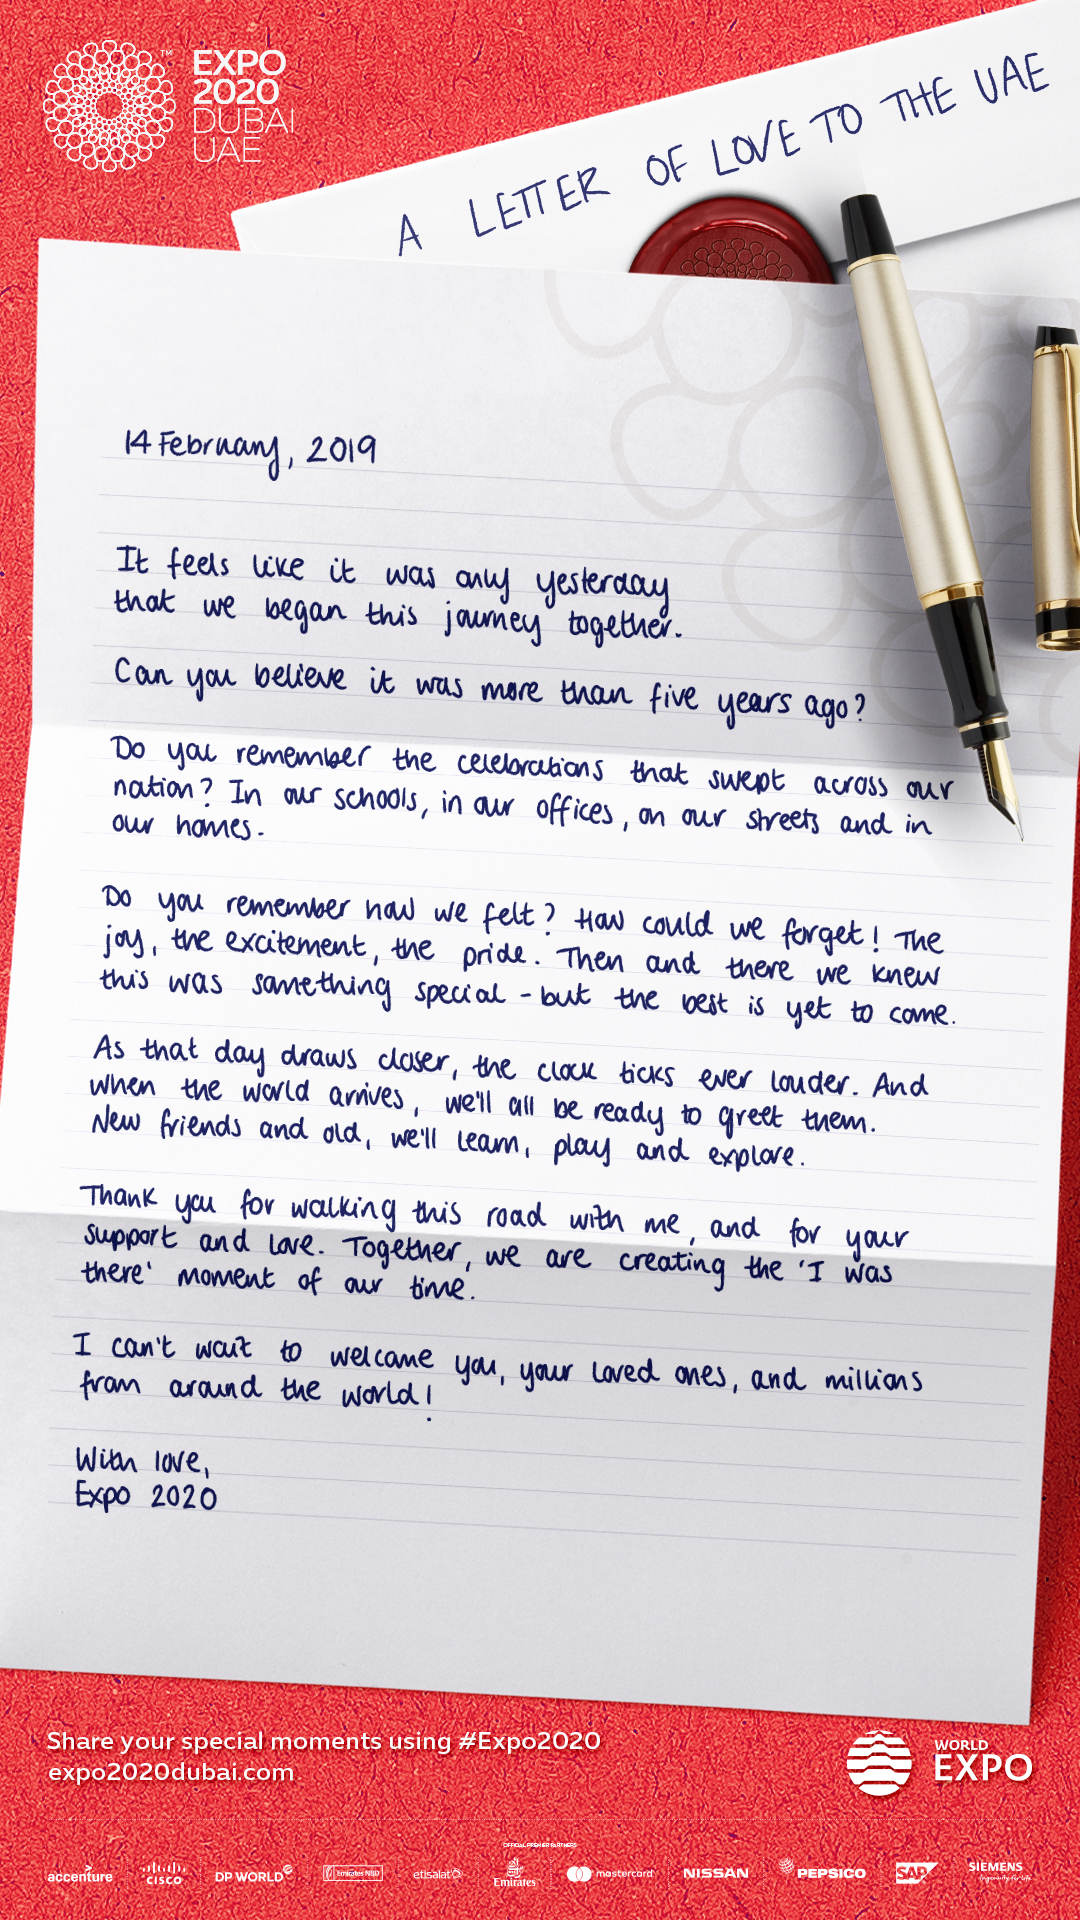 Best Years Expo 2020 Expo 2020 sends a letter of love to the UAE   Emirates24|7